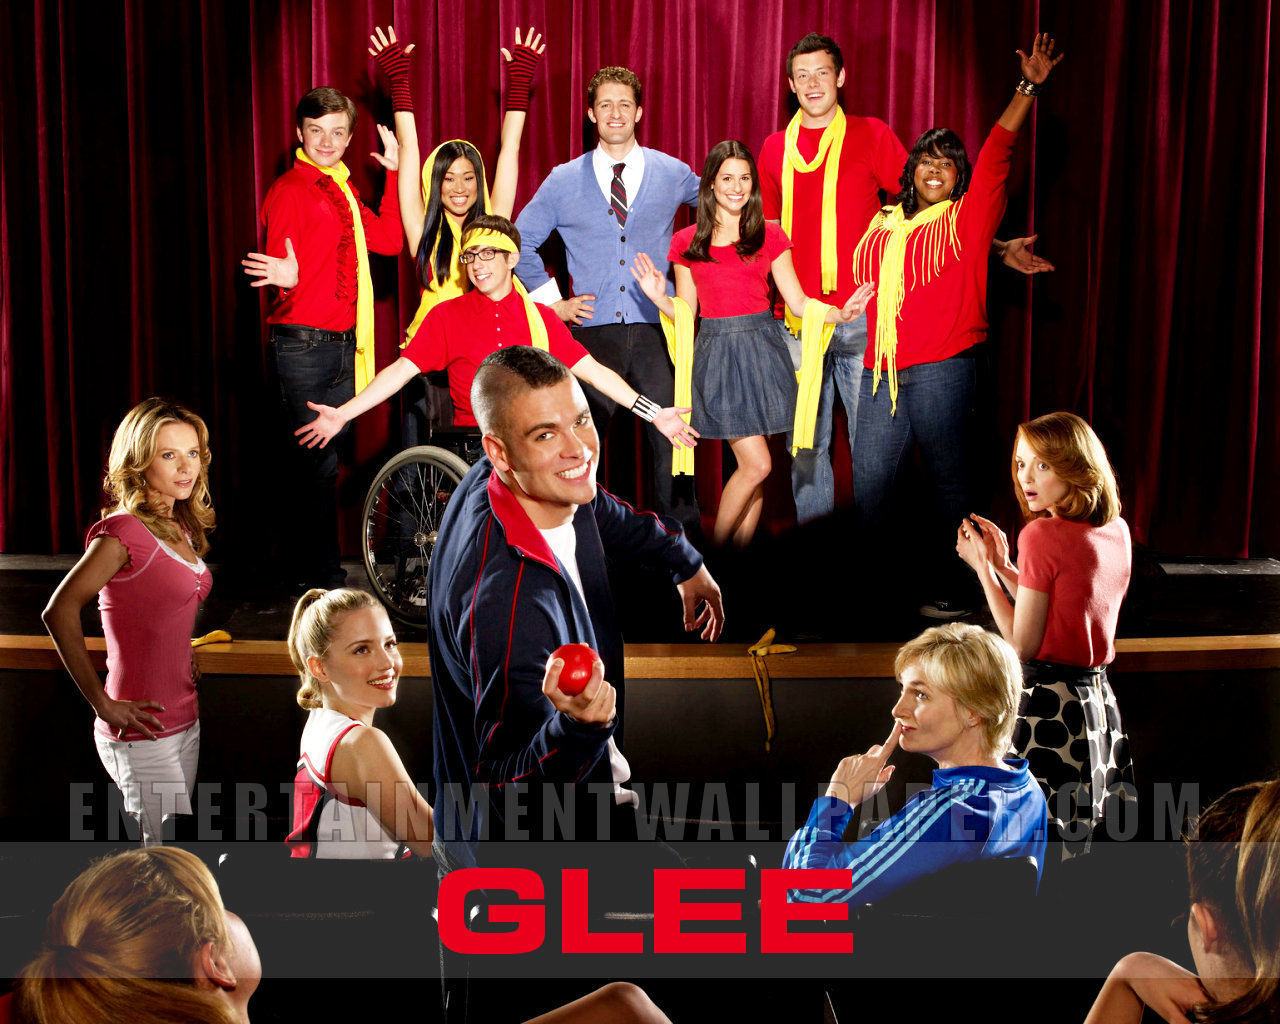 Glee promotional wallpaper